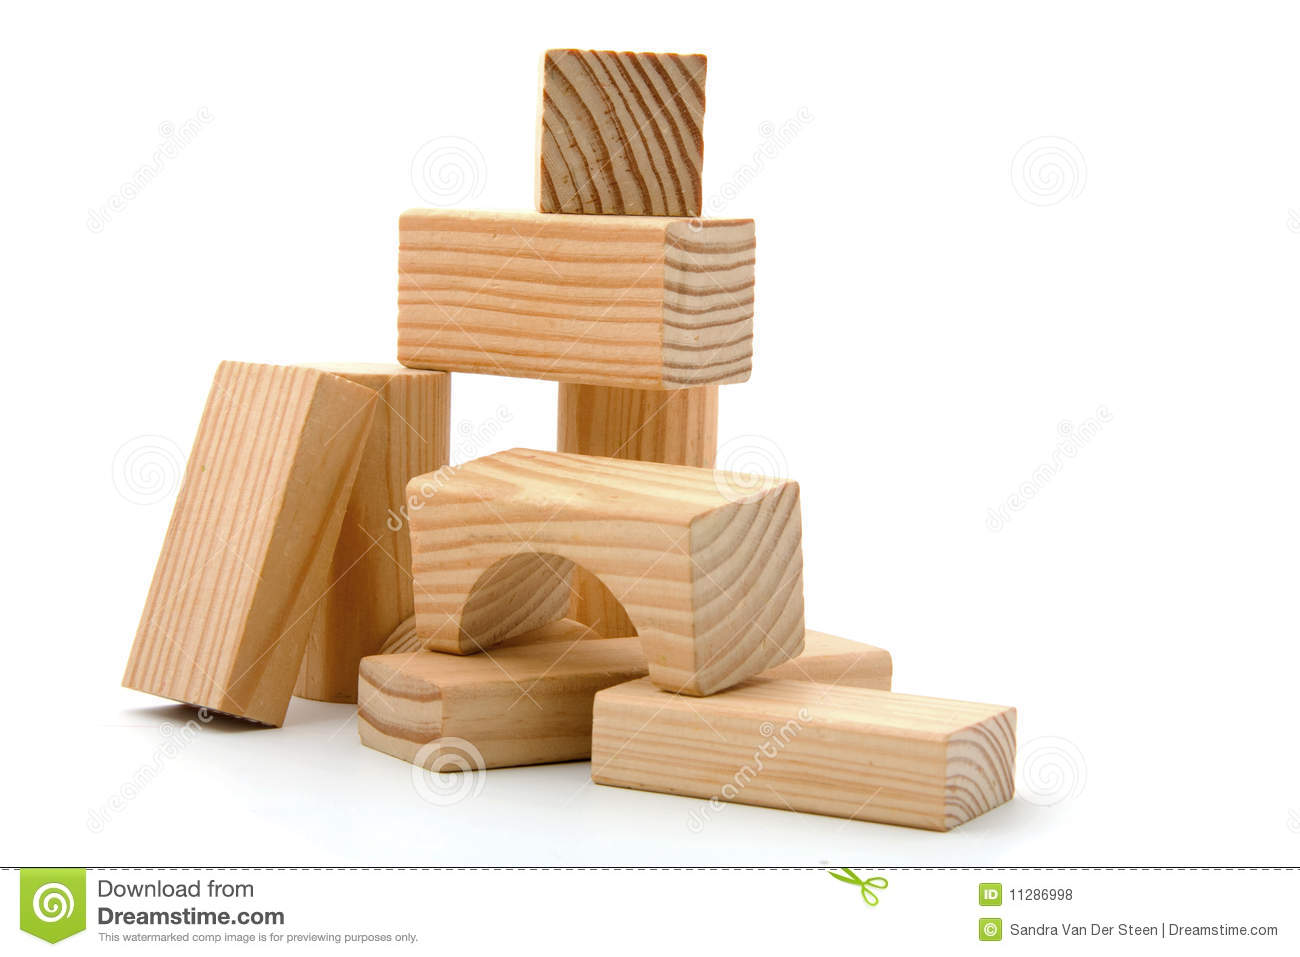 Wooden Building Blocks Royalty Free Stock Photos - Image: 11286998